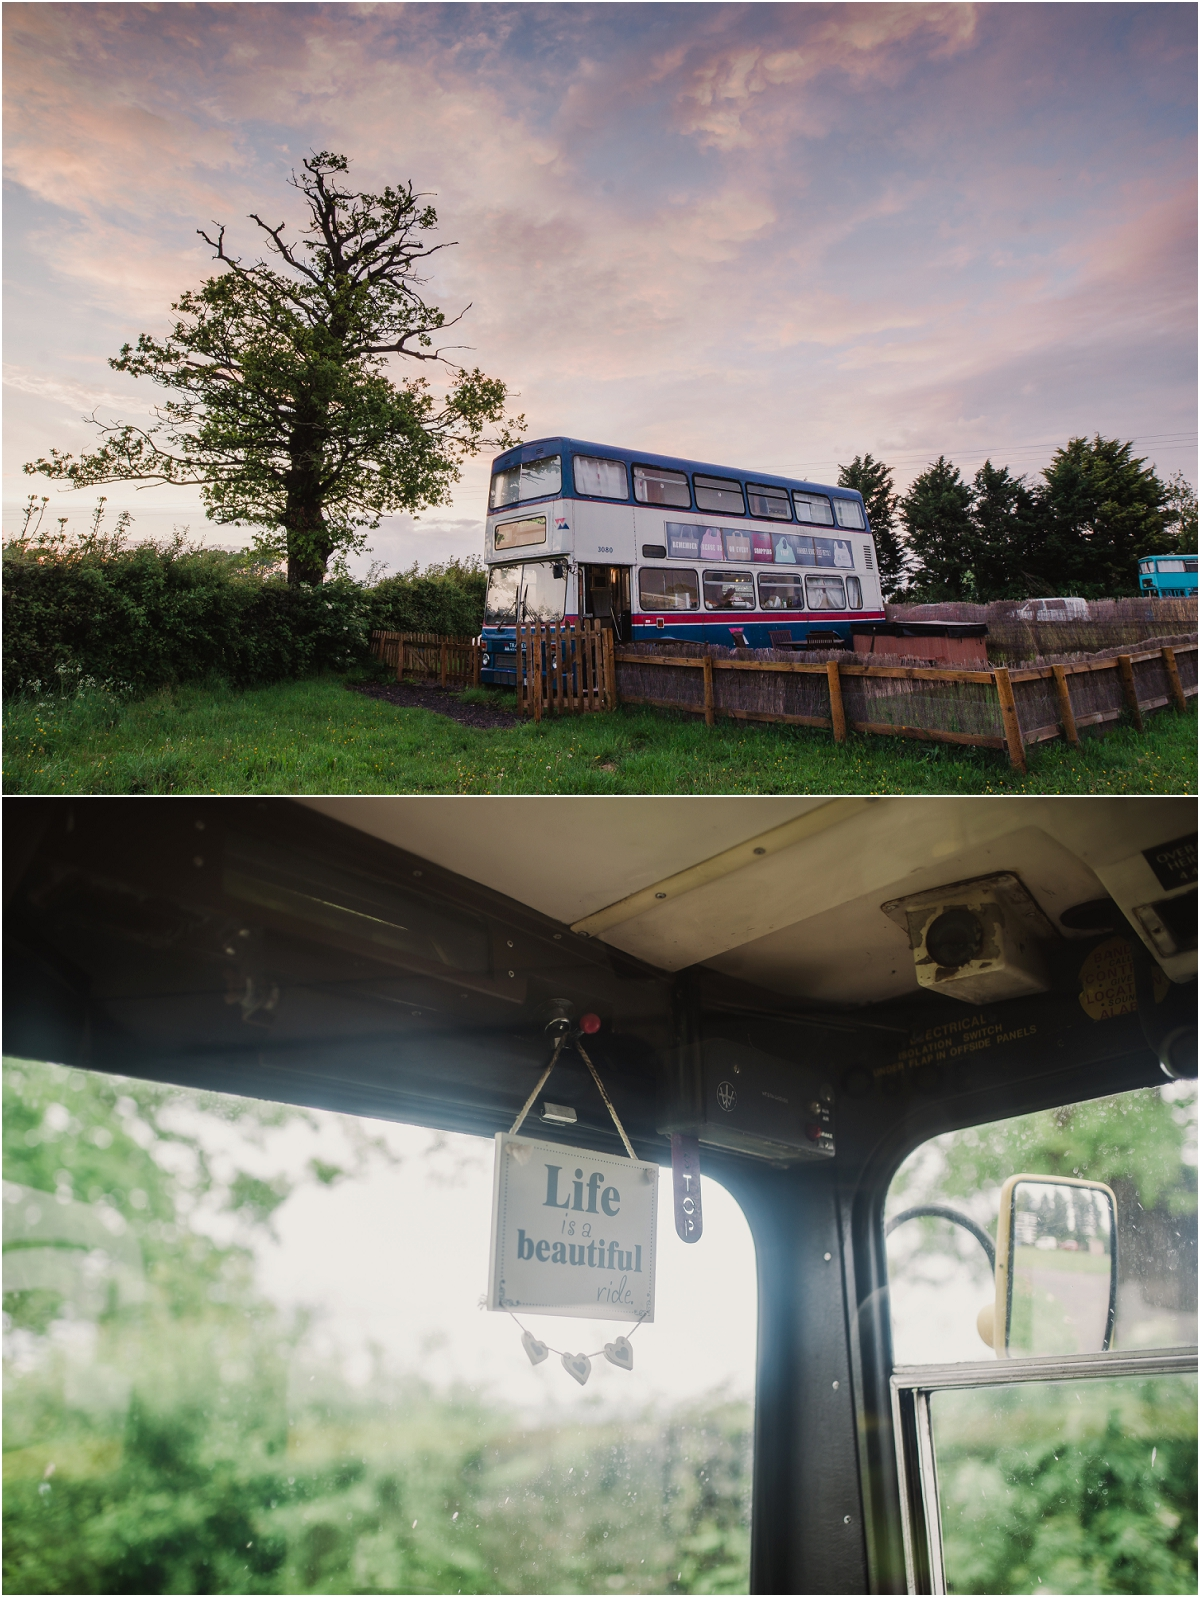 Pigeon Door nestled in the gorgeous countryside not far from Shrewsbury and overlooking the pointy sudden Shropshire hills is where we found Billie Bus ... & Bus Glamping at Pigeon Door | amy taylor imaging photography